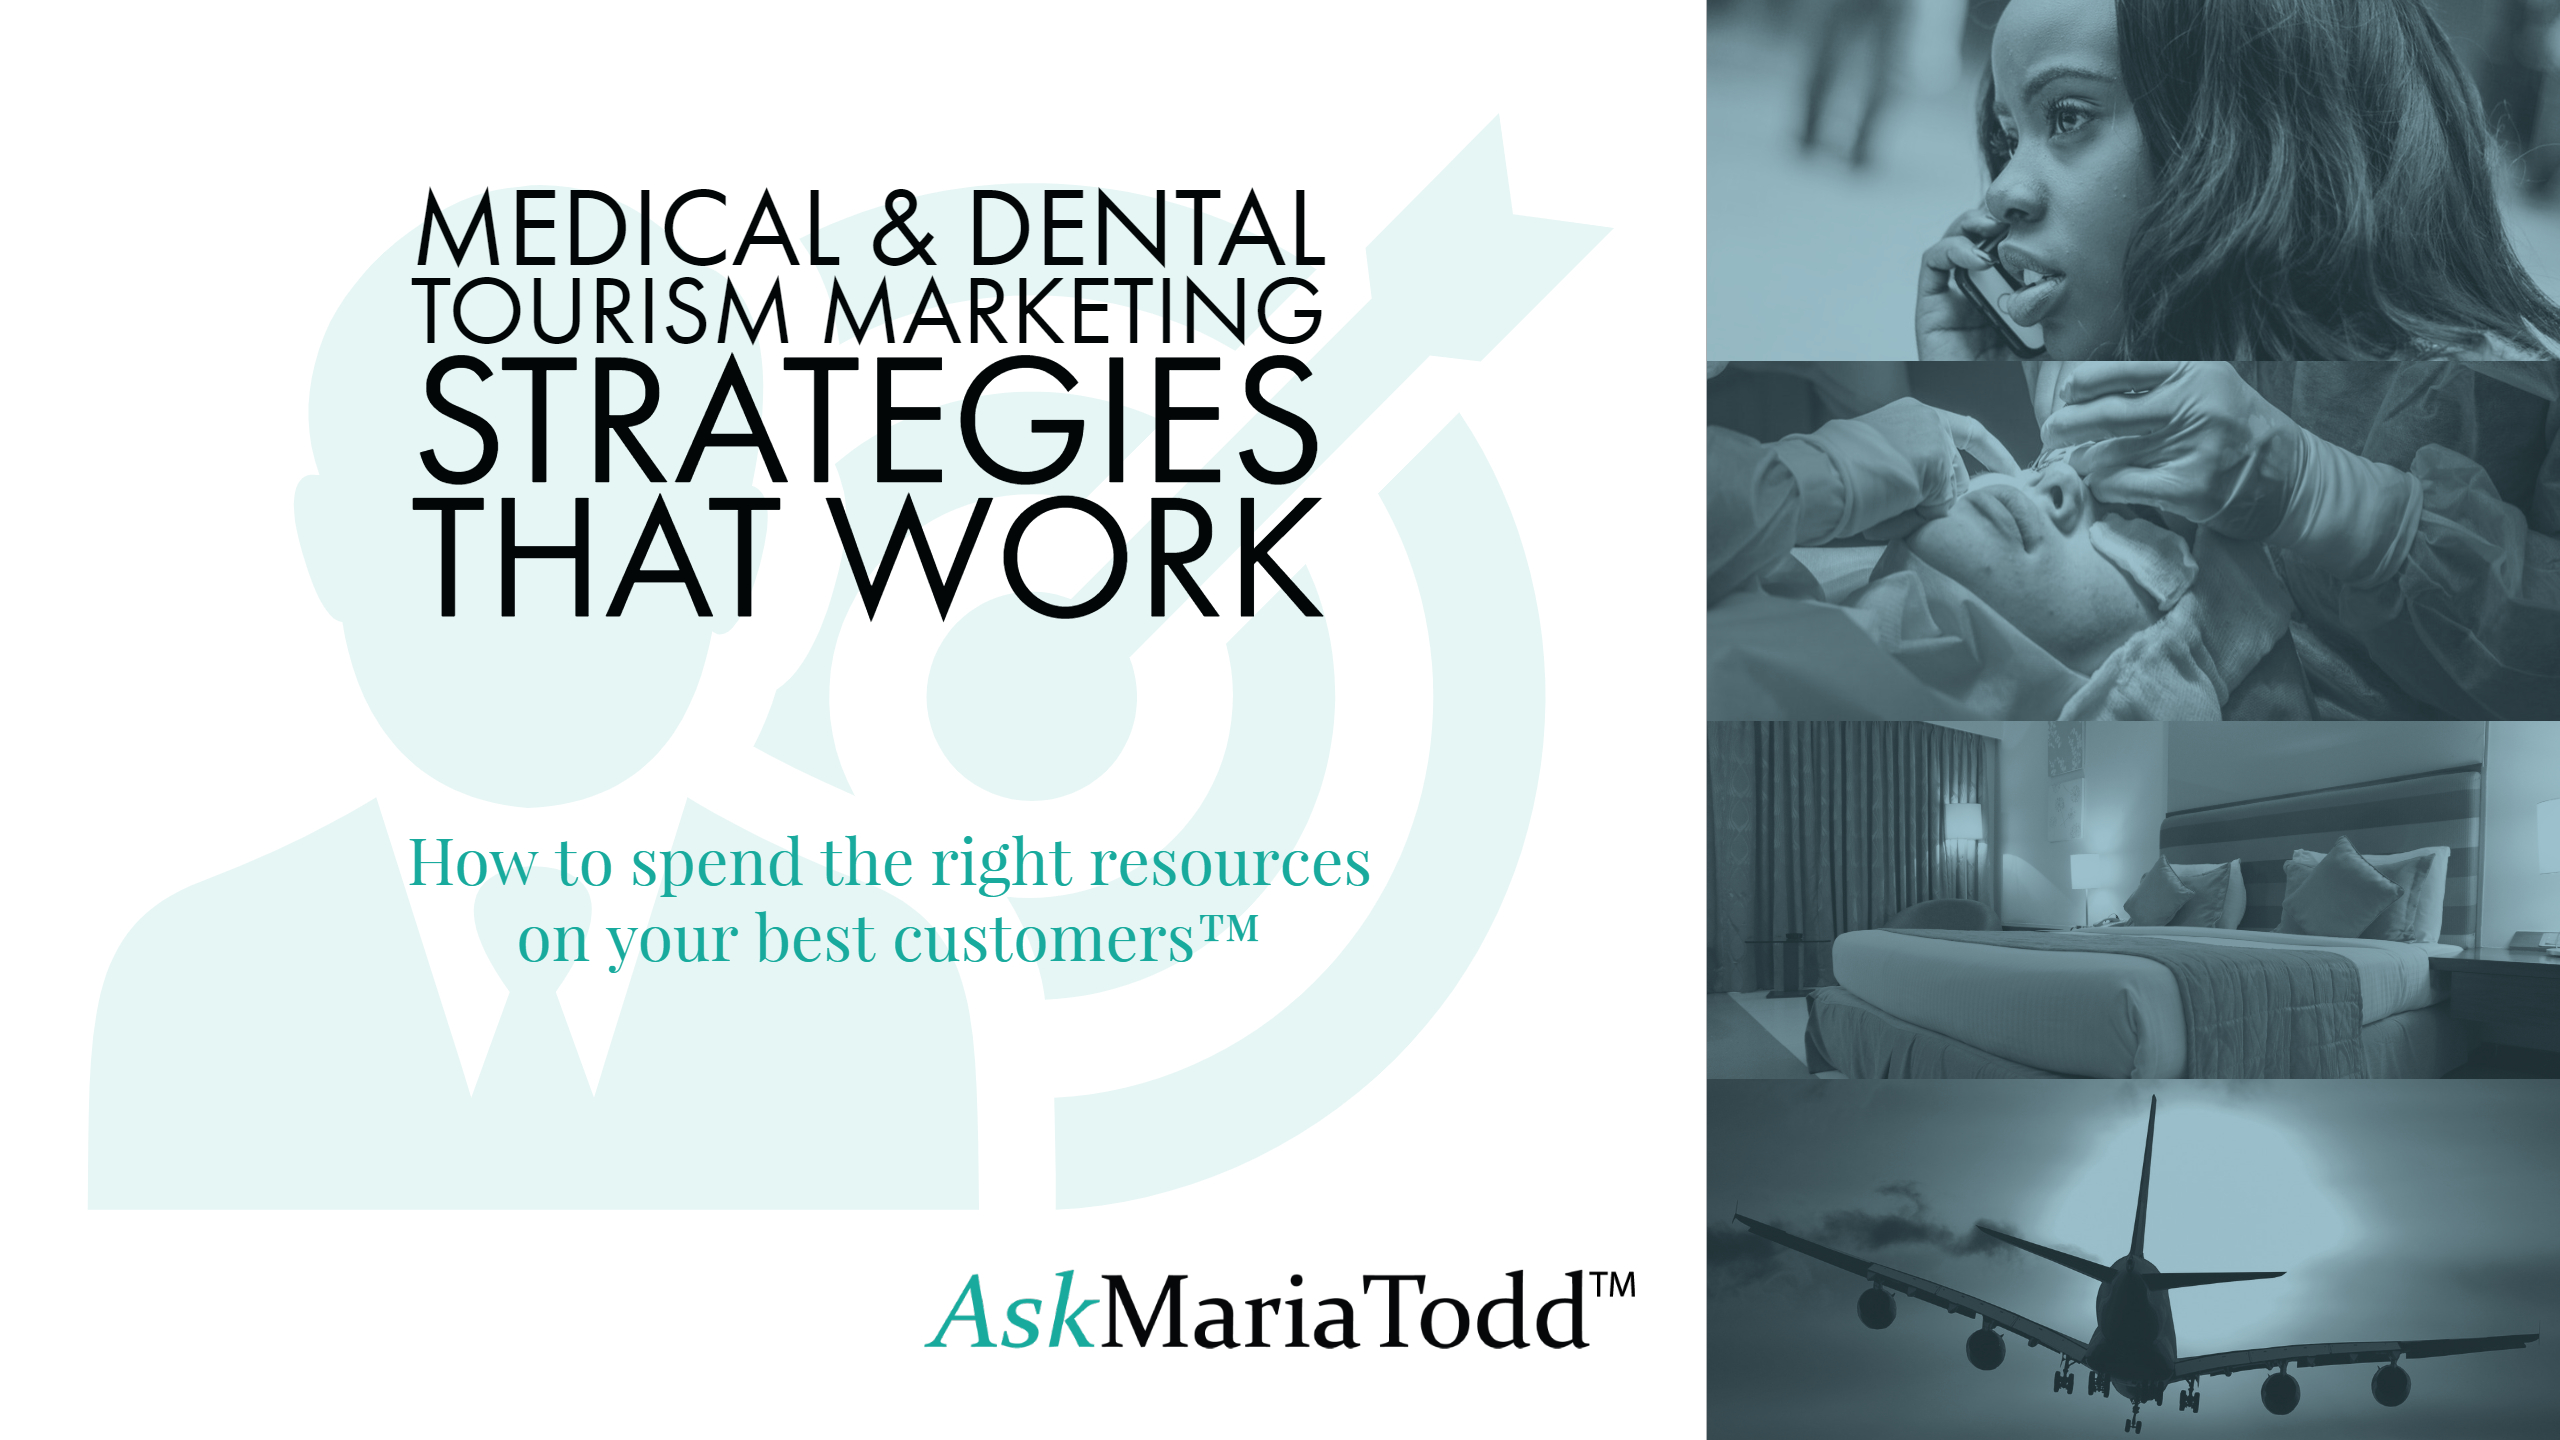 image from Maria Todd Medical & Dental Tourism Marketing Strategies that Work